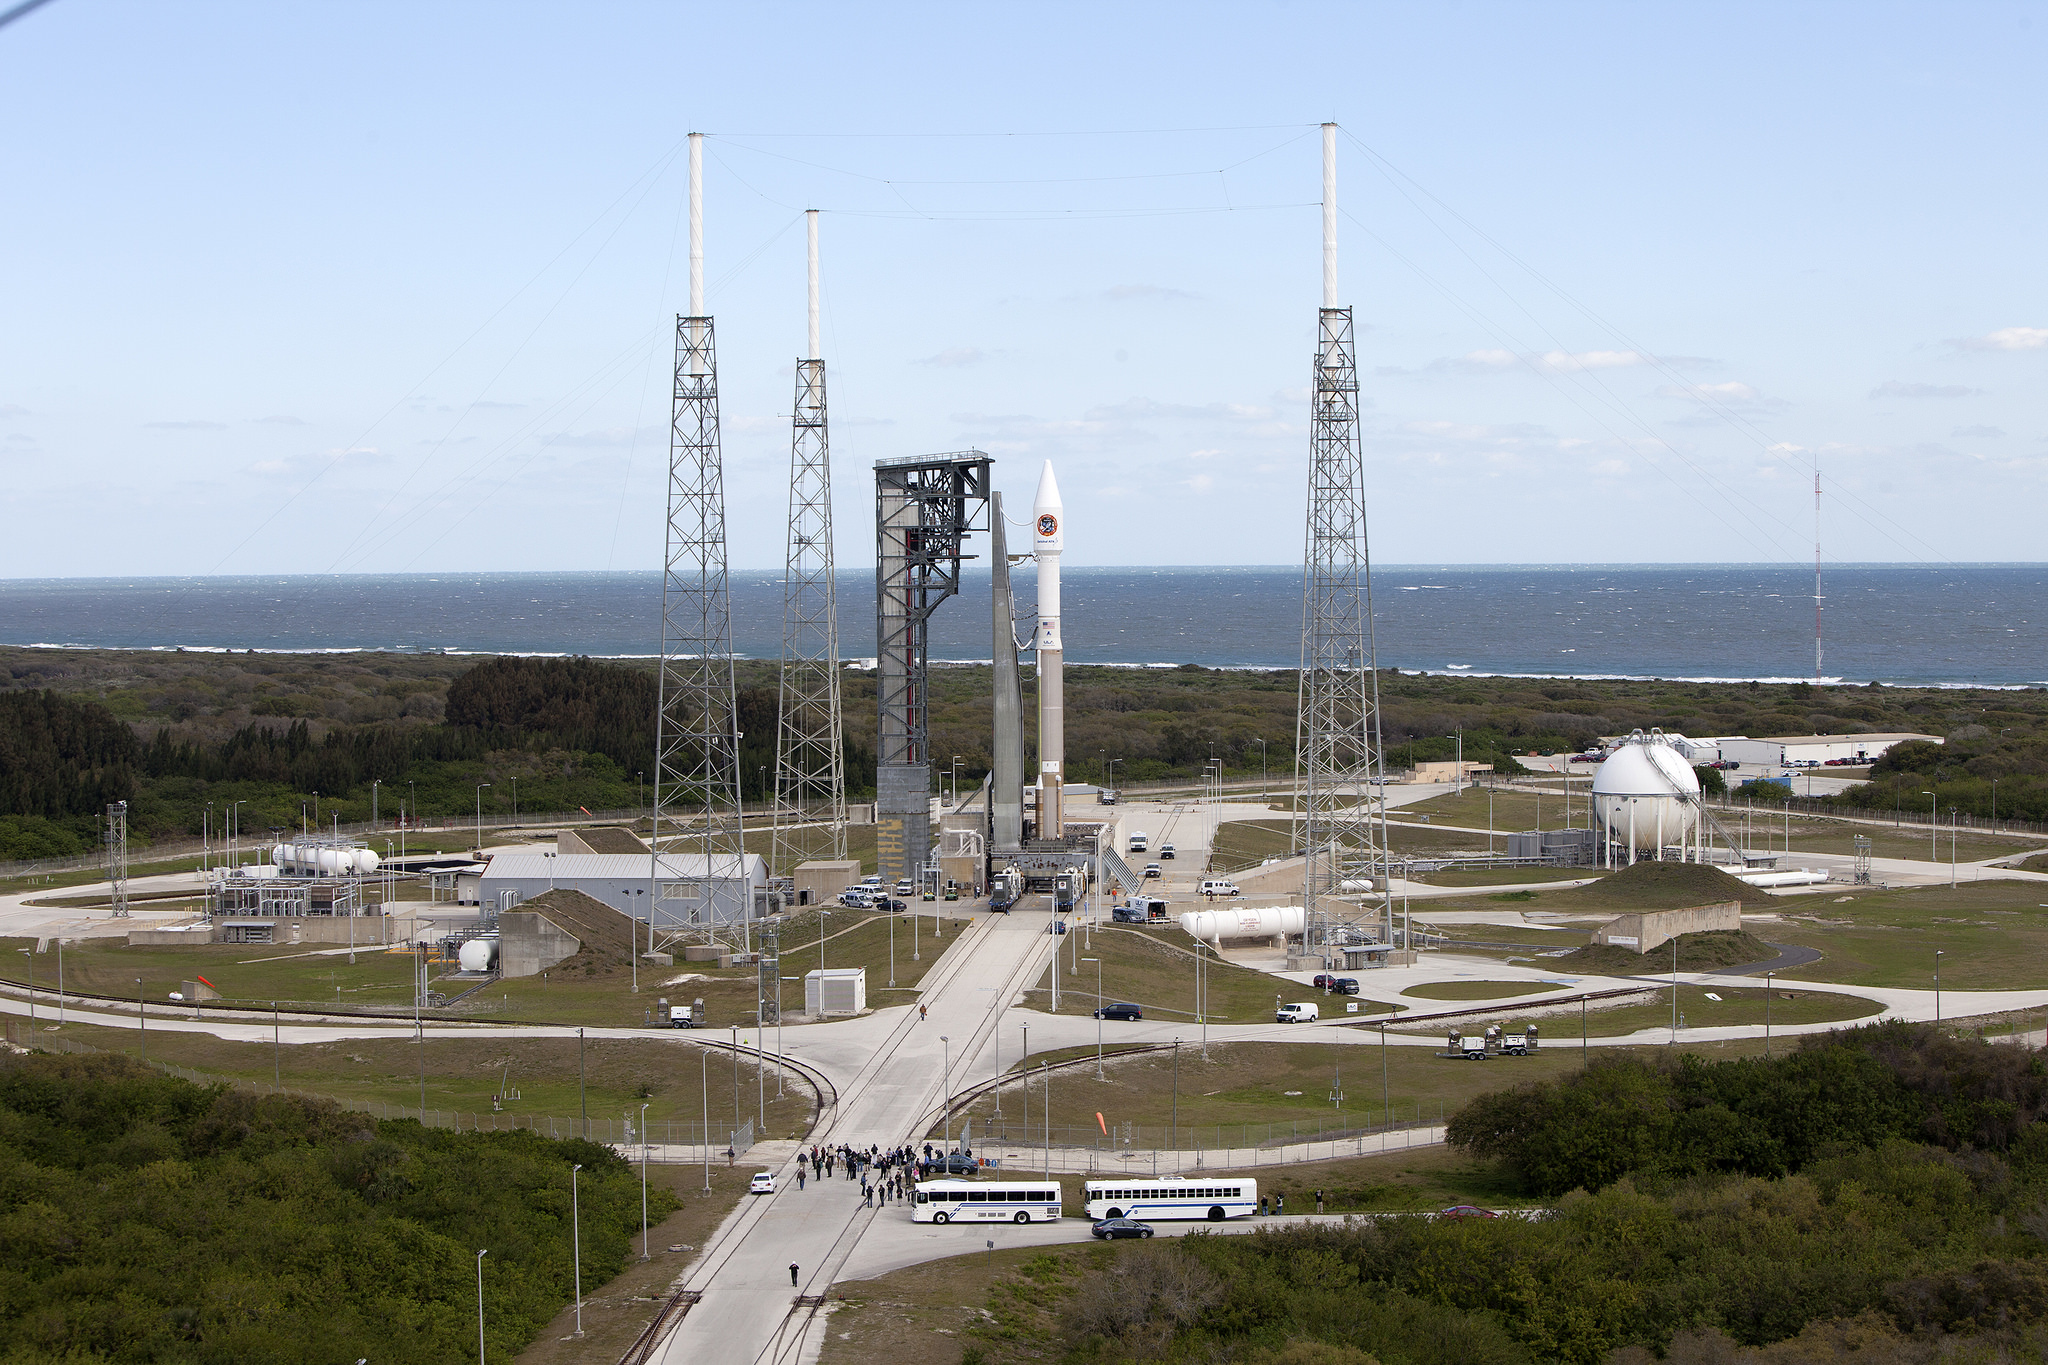 Space Launch Complex 41